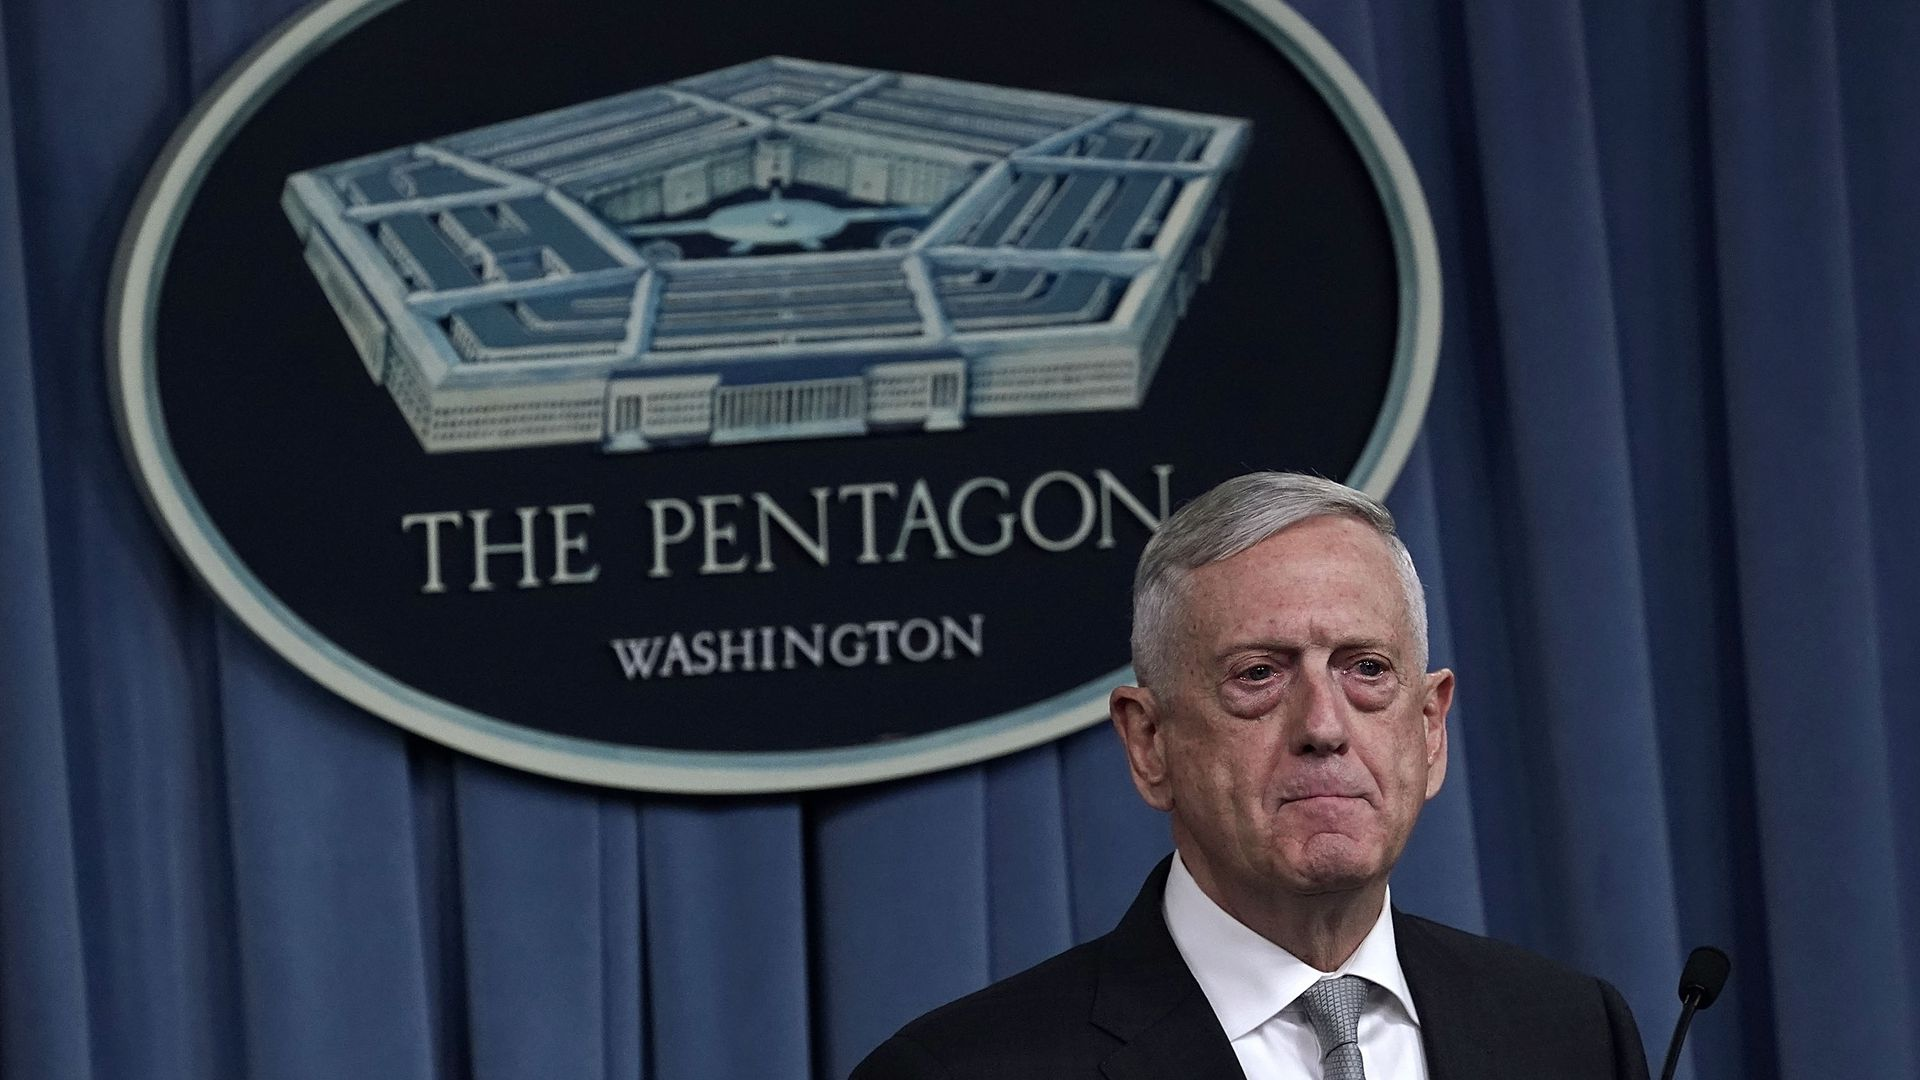 Defense Secretary Mattis stands in front of Pentagon sign.